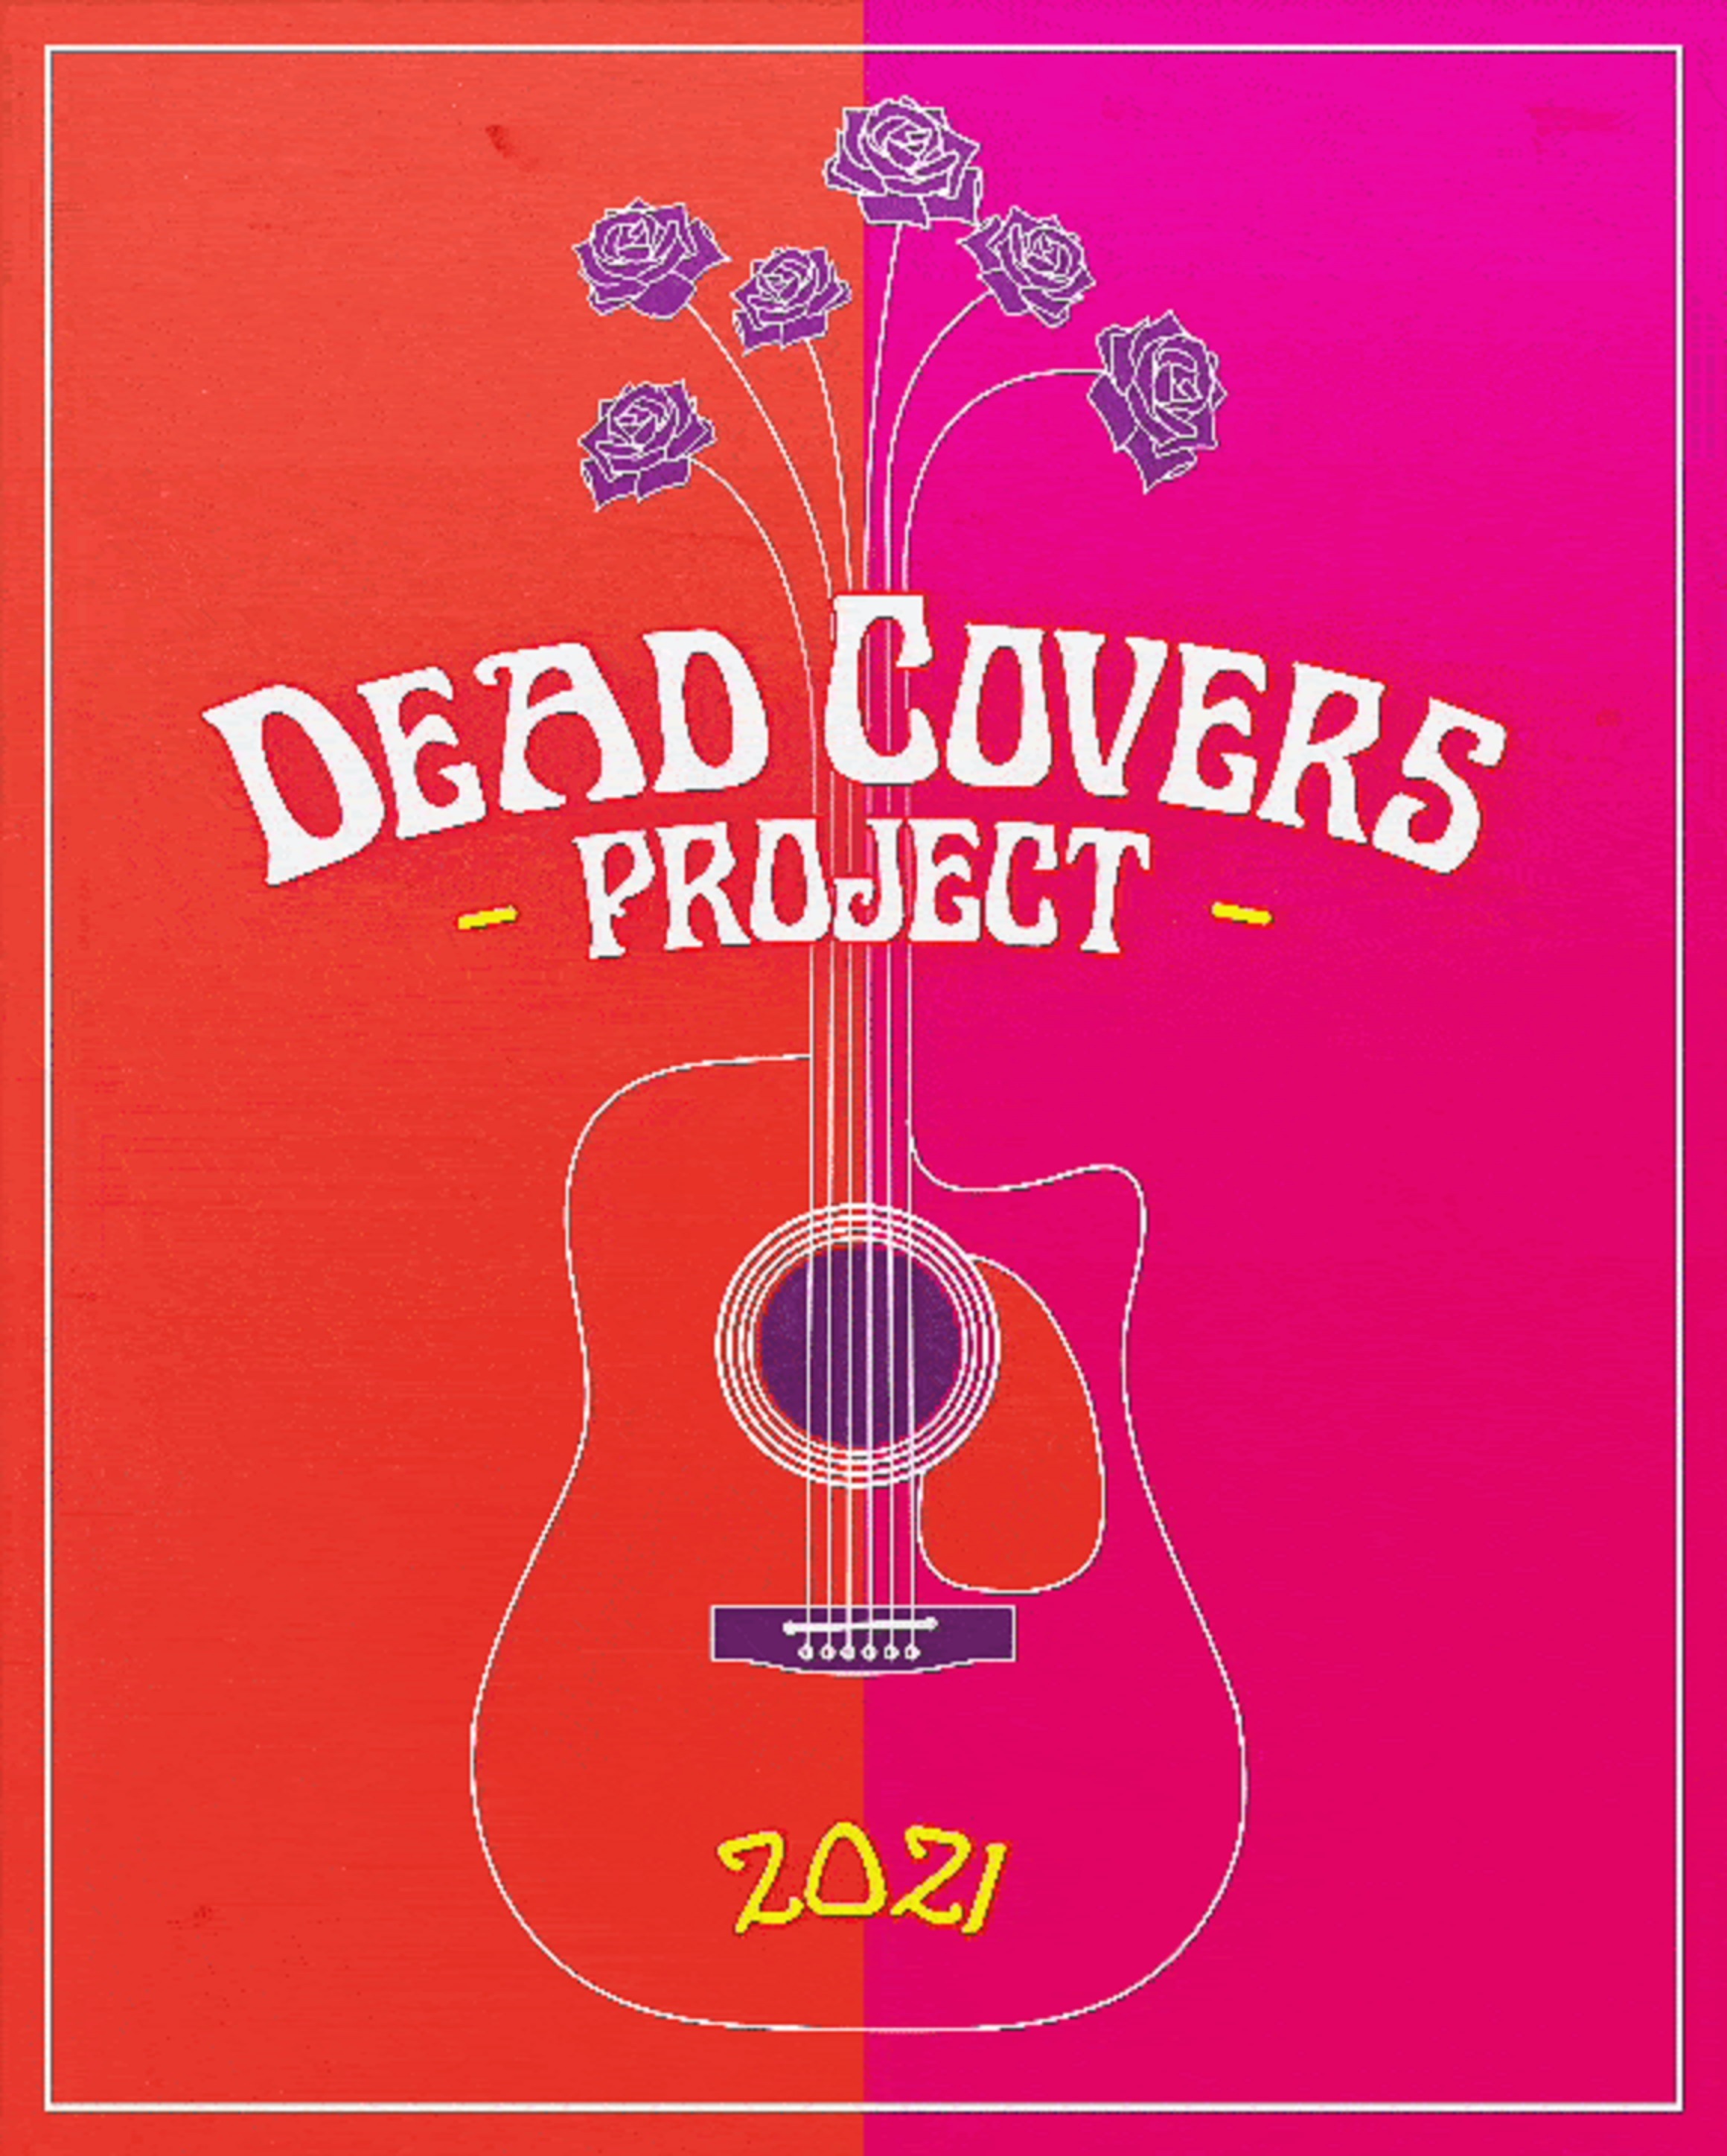 263 Dead Cover submissions and counting!